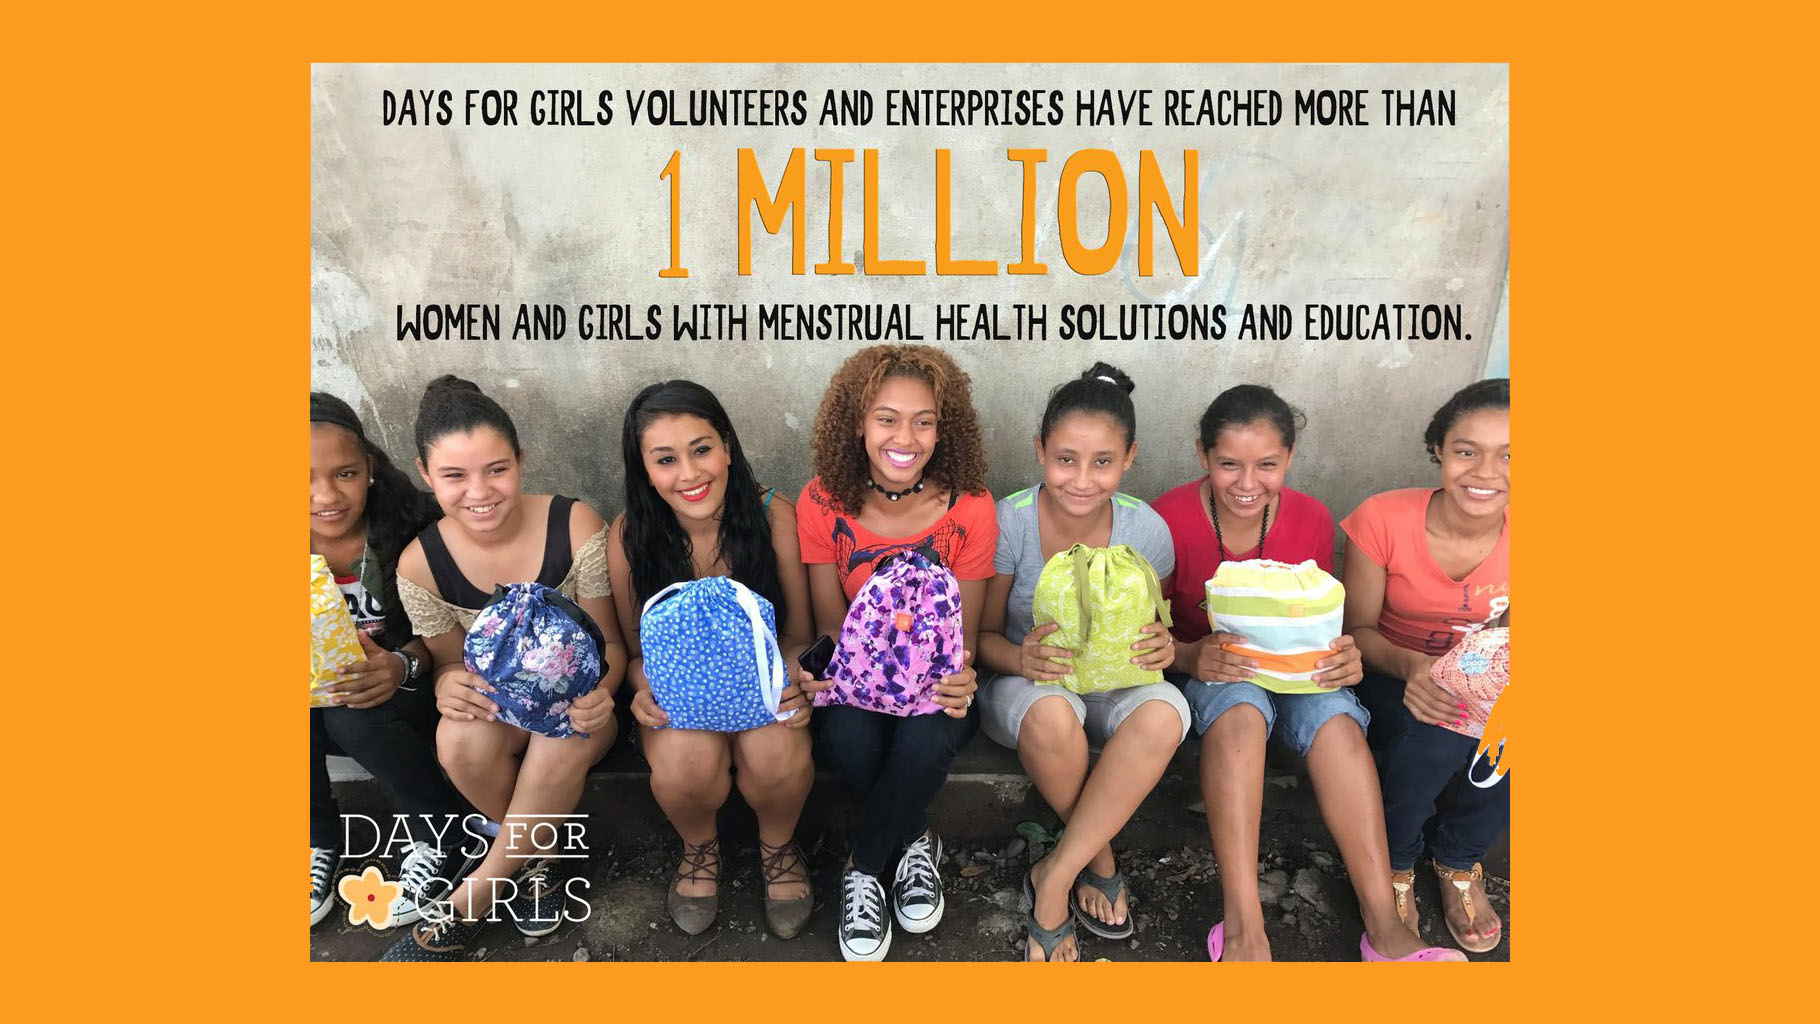 Days for Girls: 1 Million Reached